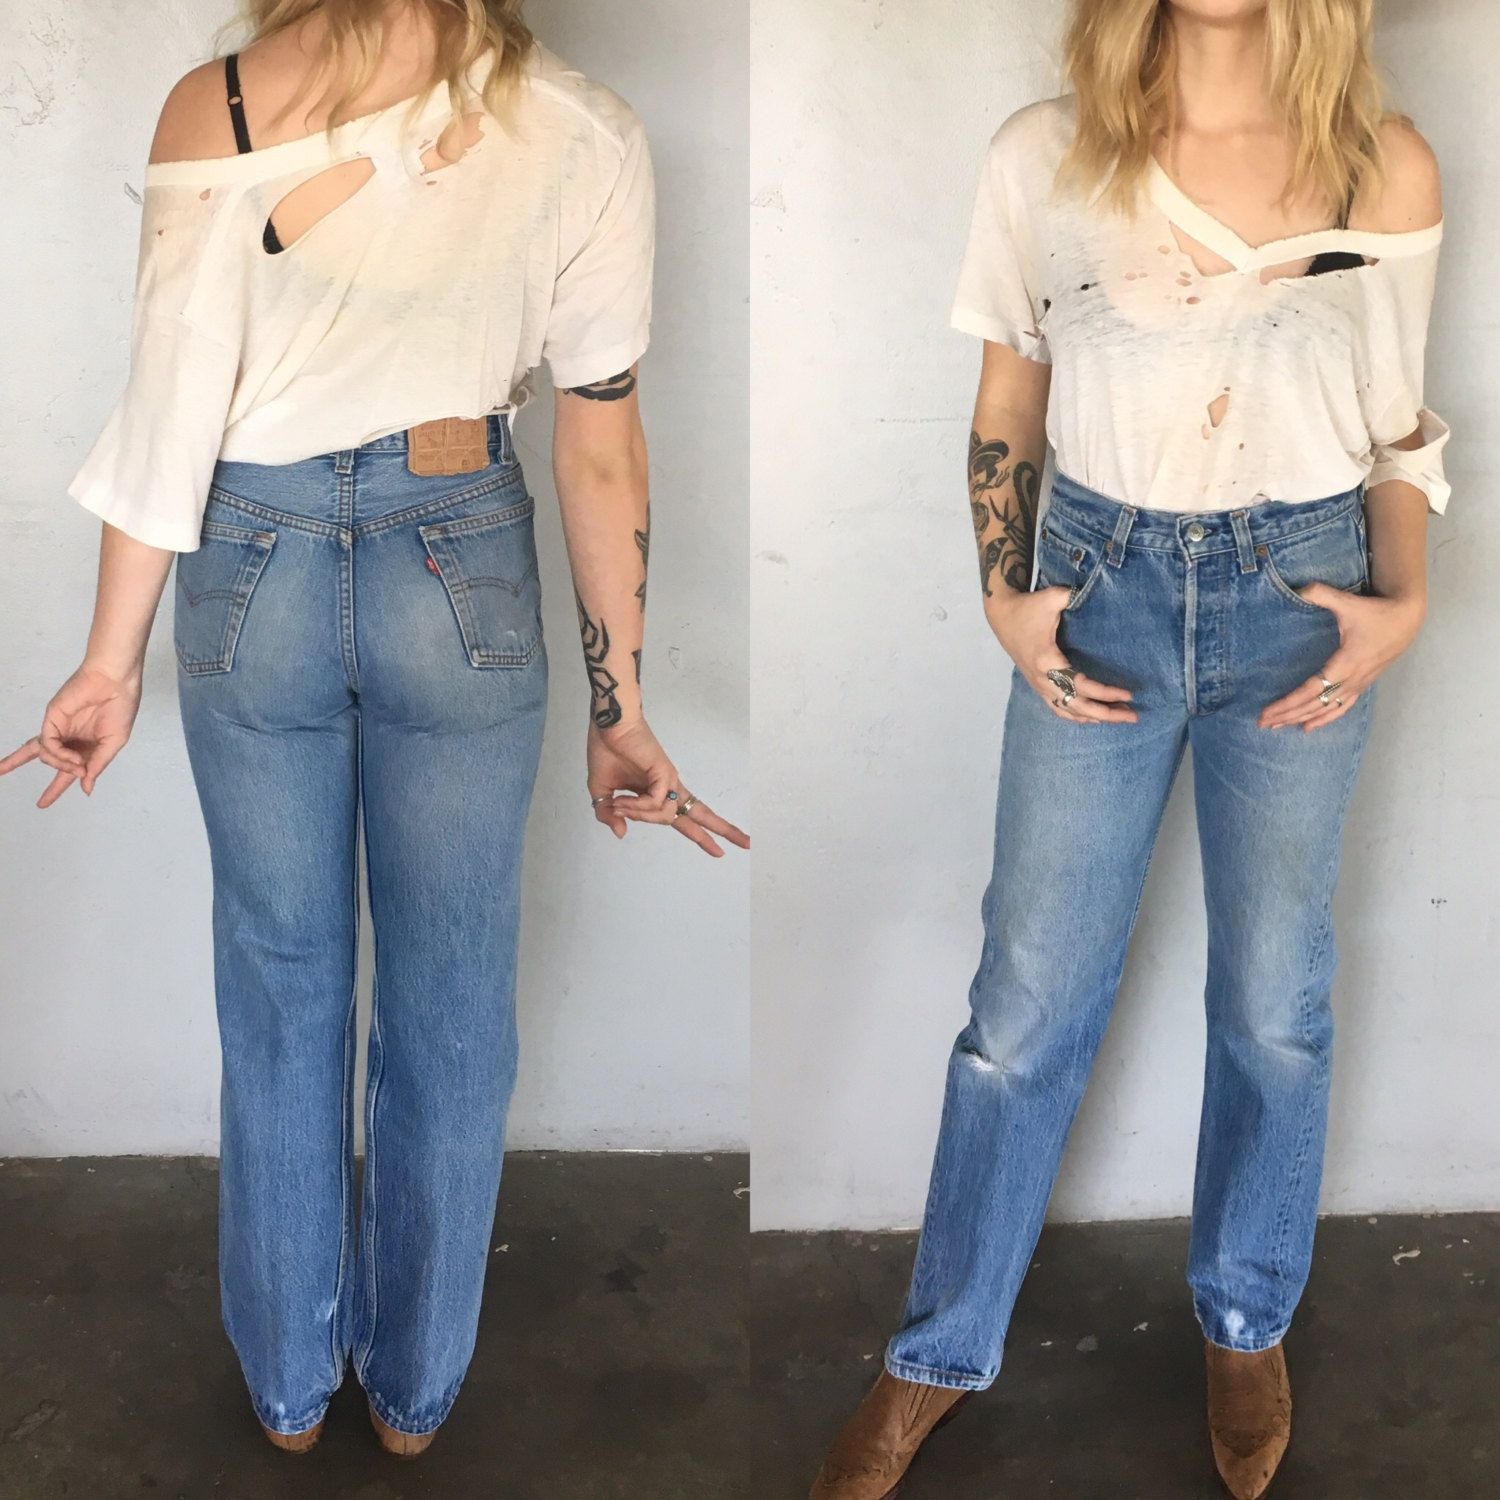 260eab6f Levi's 501 xx jeans mens womens levis vintage W 31 L 33 classic fit hips or  high waisted broken worn in perfect cut cuff whatever super rad by ...